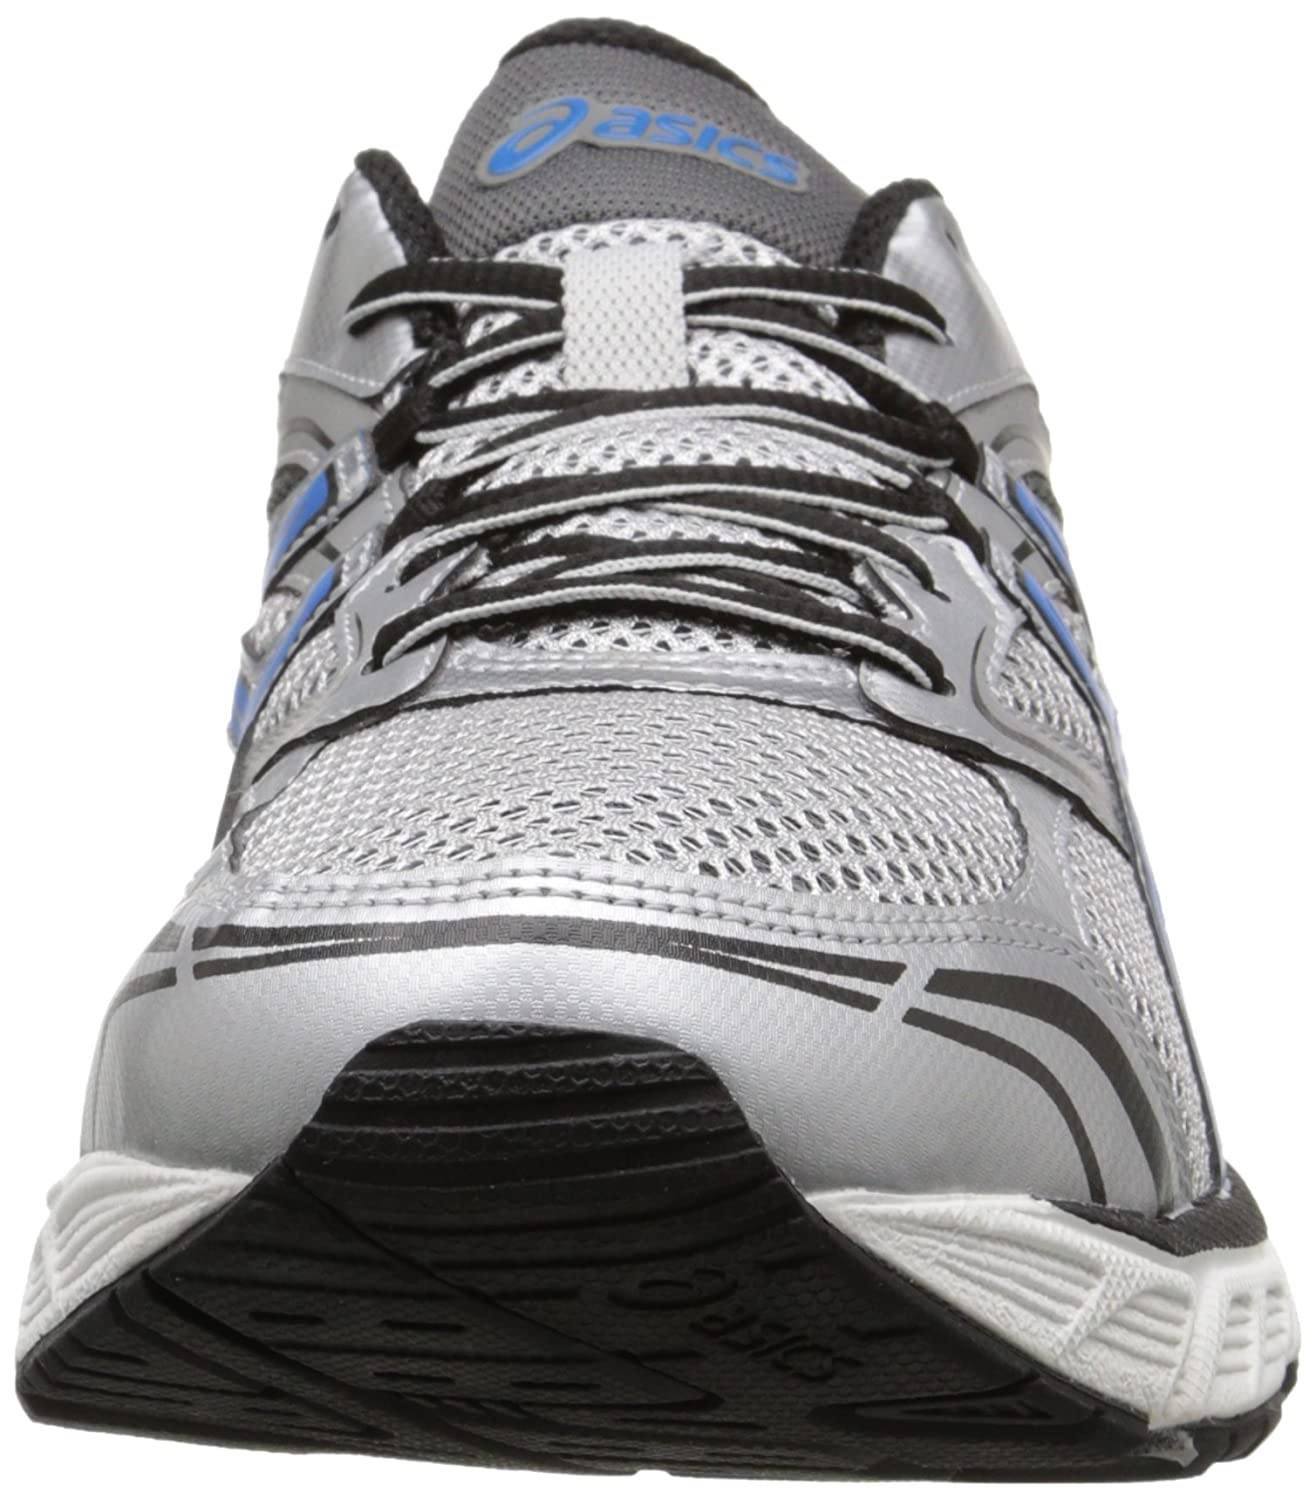 Asics Gel-Equation 8 Fibra sintética Zapatillas, Lightning / Electric Blue / Black, 40.5